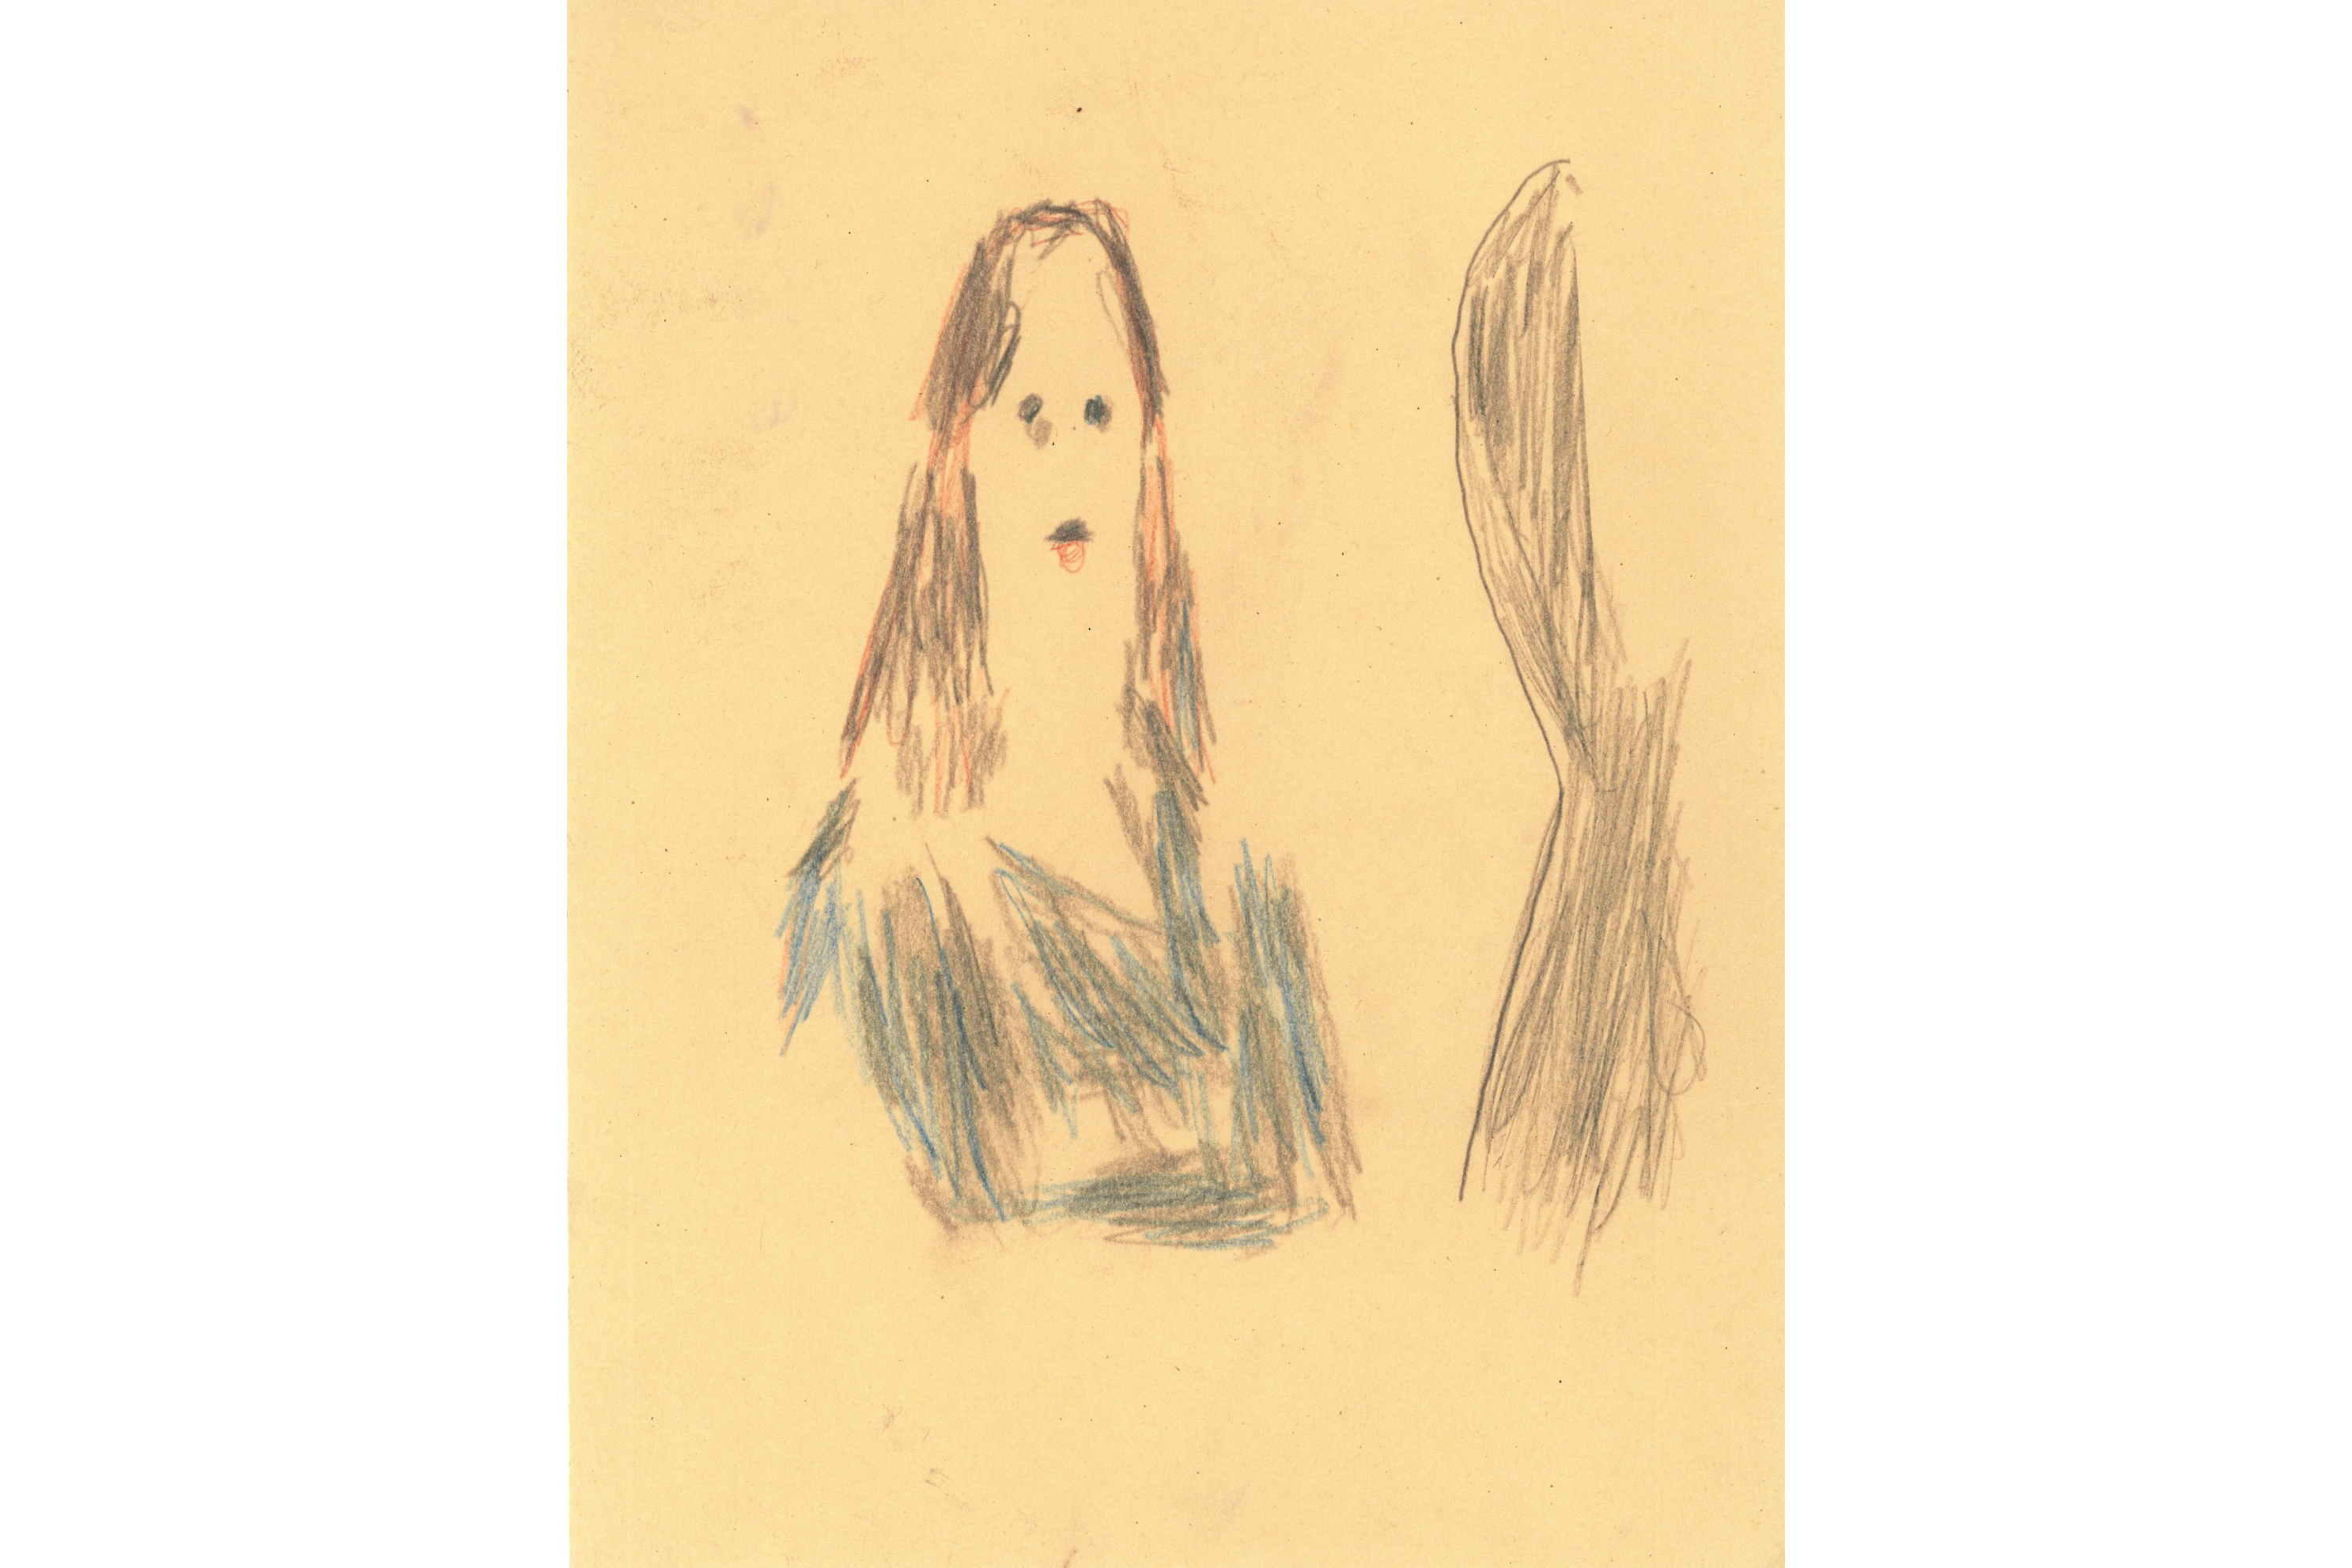 A sketchy, impressionist portrait of a person with long brown hair on a cream background. The figure's shadow looms to the right. The face is featureless except for the eyes and mouth rendered as dark scribbly dots.